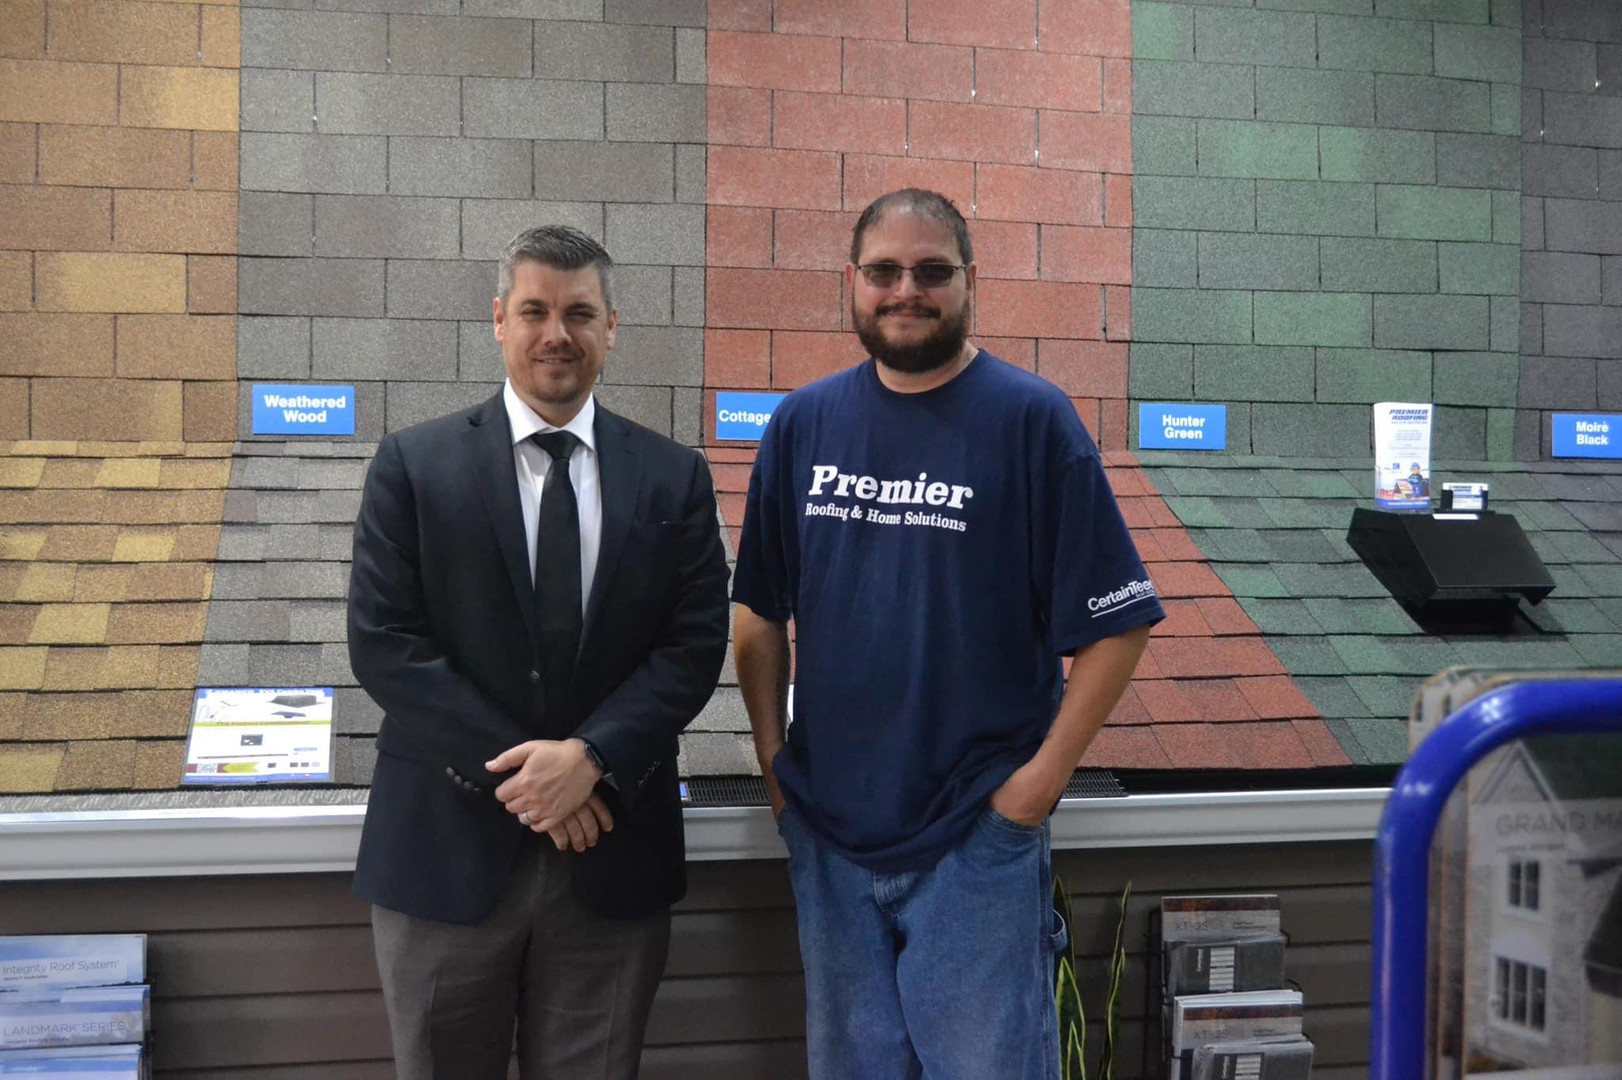 Keith Carothers /owner Premier Roofing, llc with Ken Kinkade / Cabot City Mayor